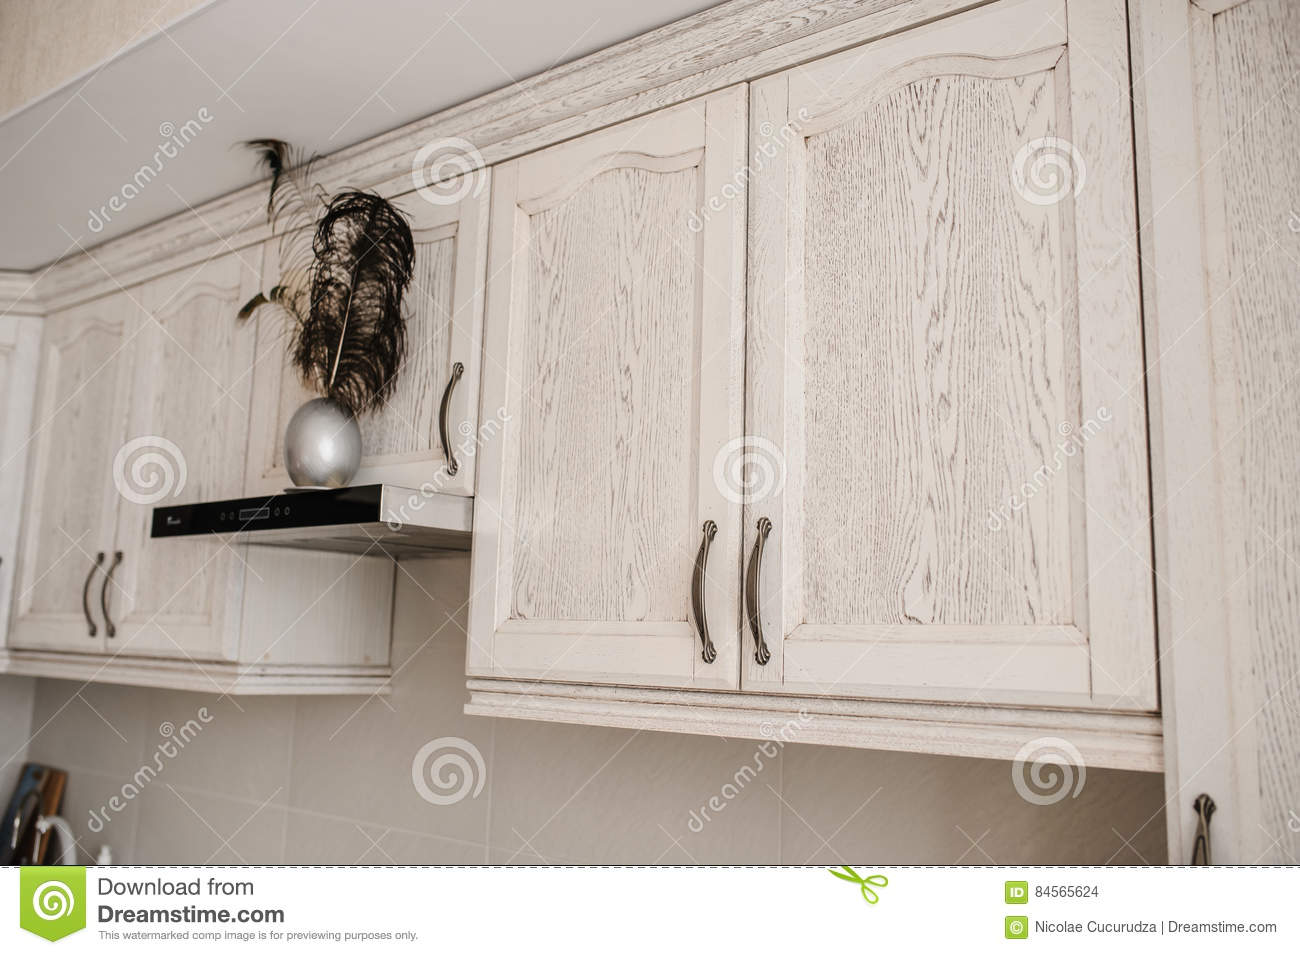 Antique White Painted Cupboard Closet, Old Hand Made Furniture In Wood With  Drawers And Doors